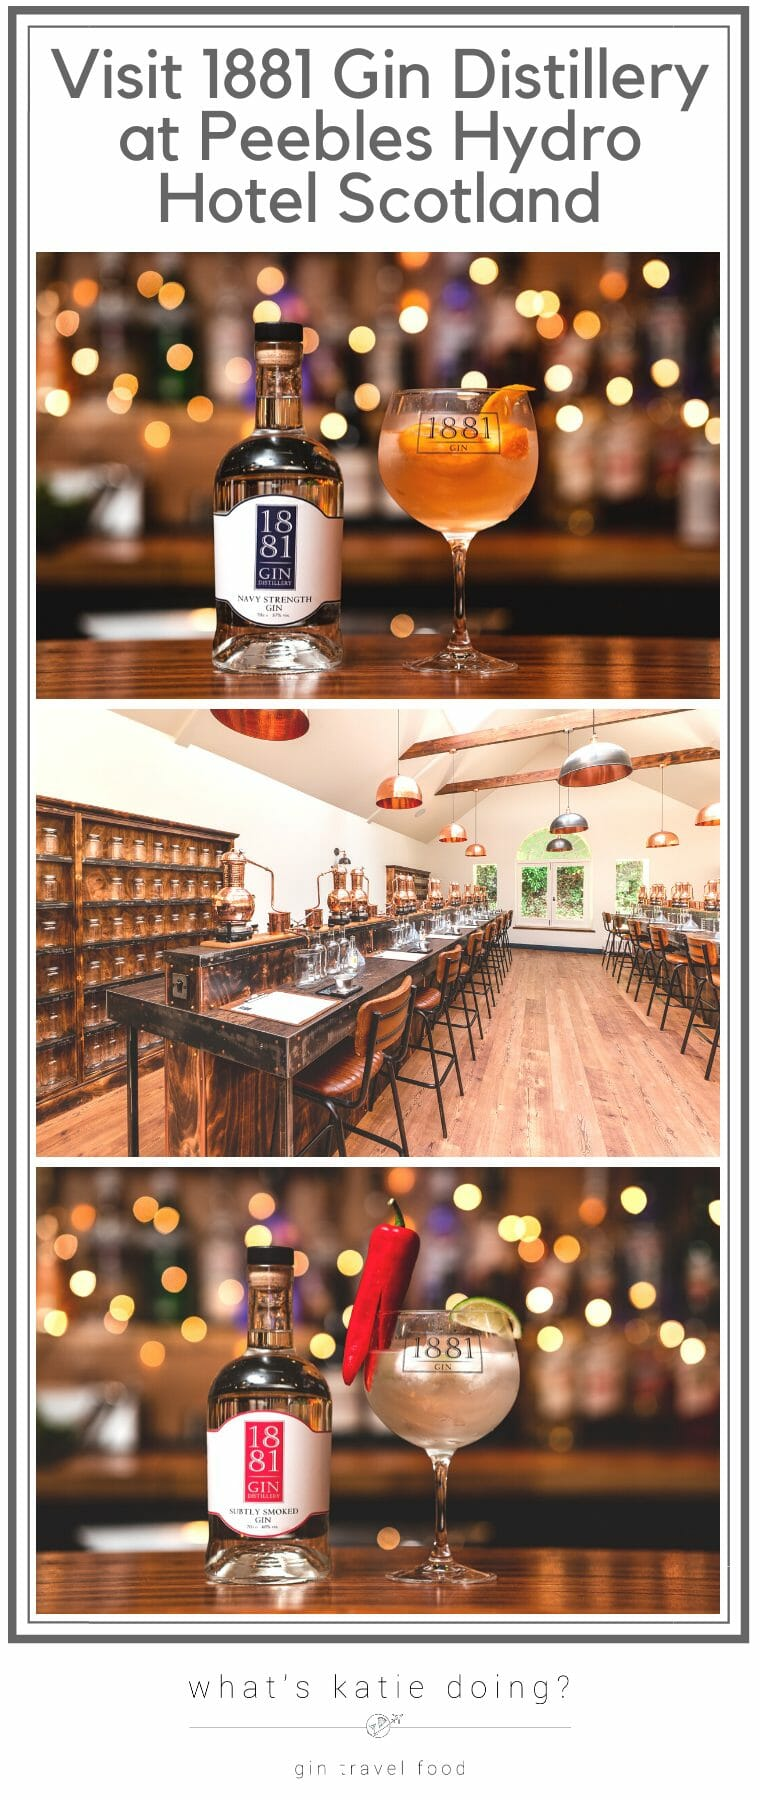 1881 gin distillery tours, tastings and gin school at Peebles Hydro hotel in Scotland